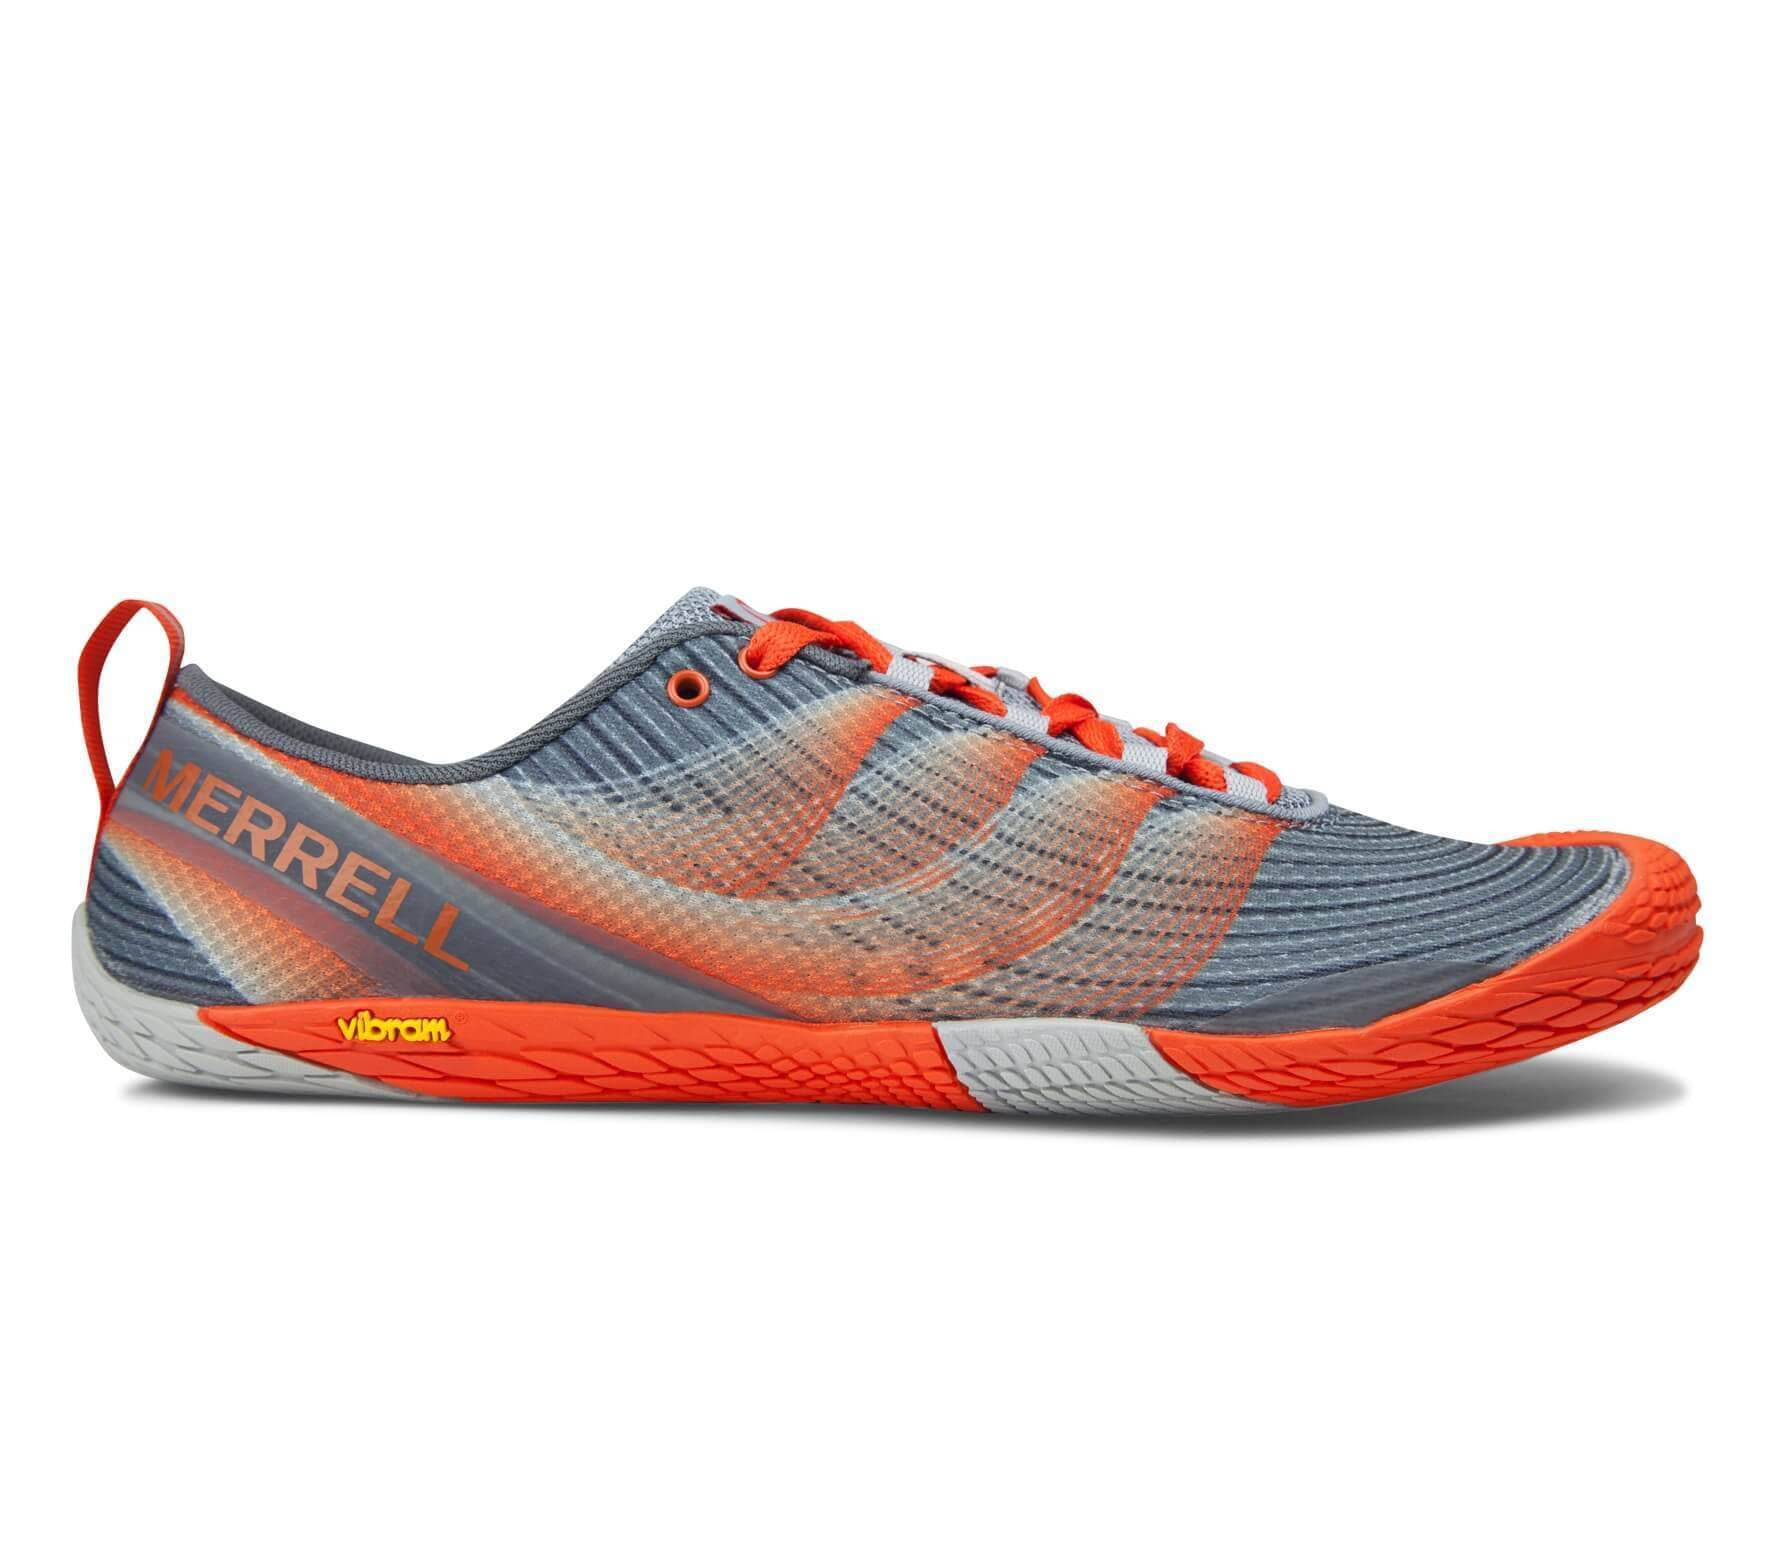 b136e2aecd Merrell - Vapor Glove 2 men's trail running shoes (grey/orange ...